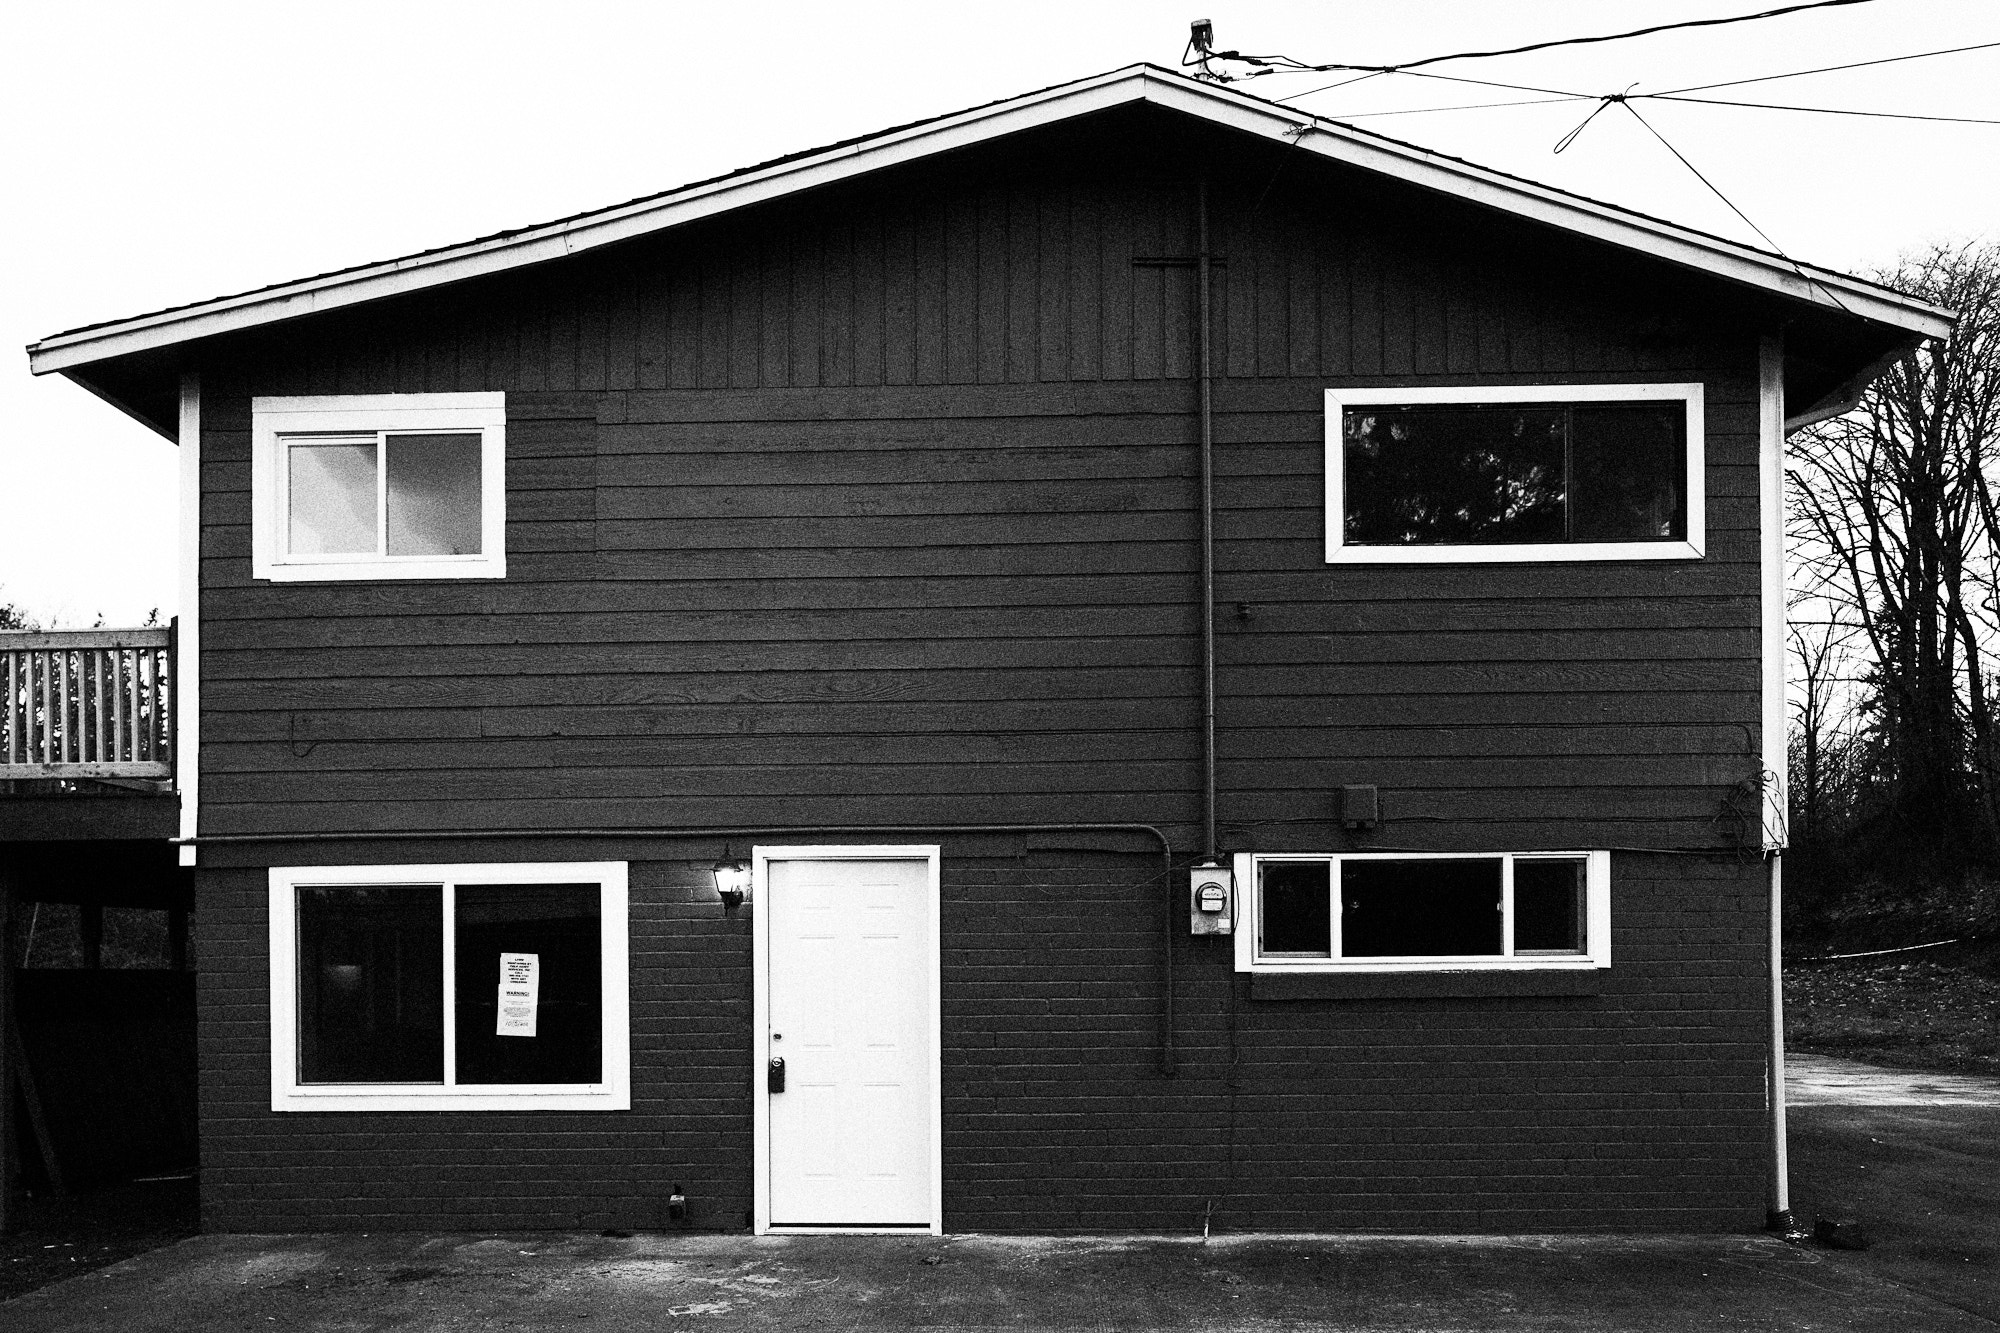 Photograph Foreclosure, 2011 by Joseph Calev on 500px